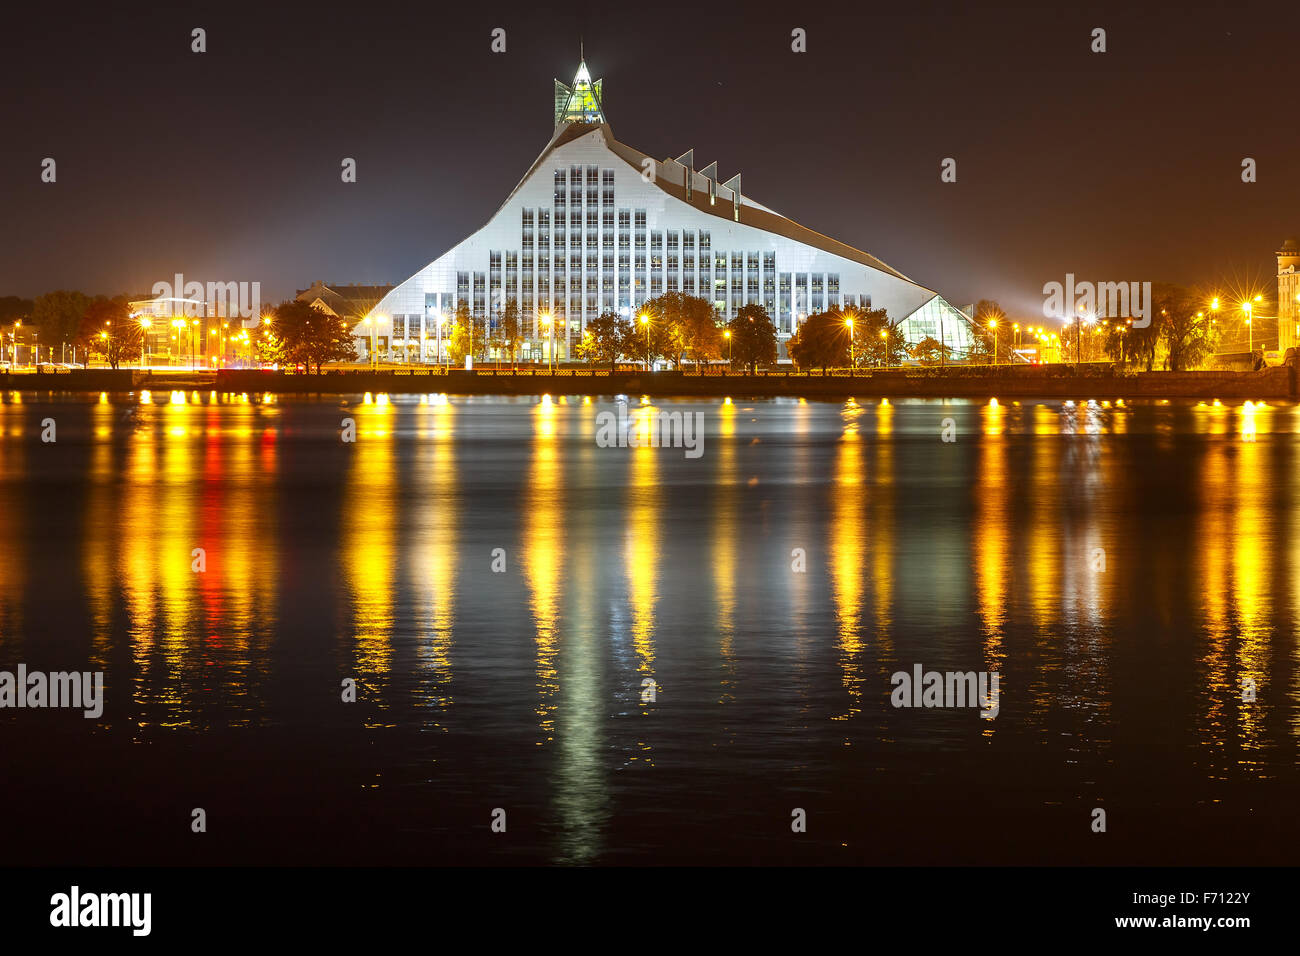 Latvian National Library at night, Riga, Latvia - Stock Image